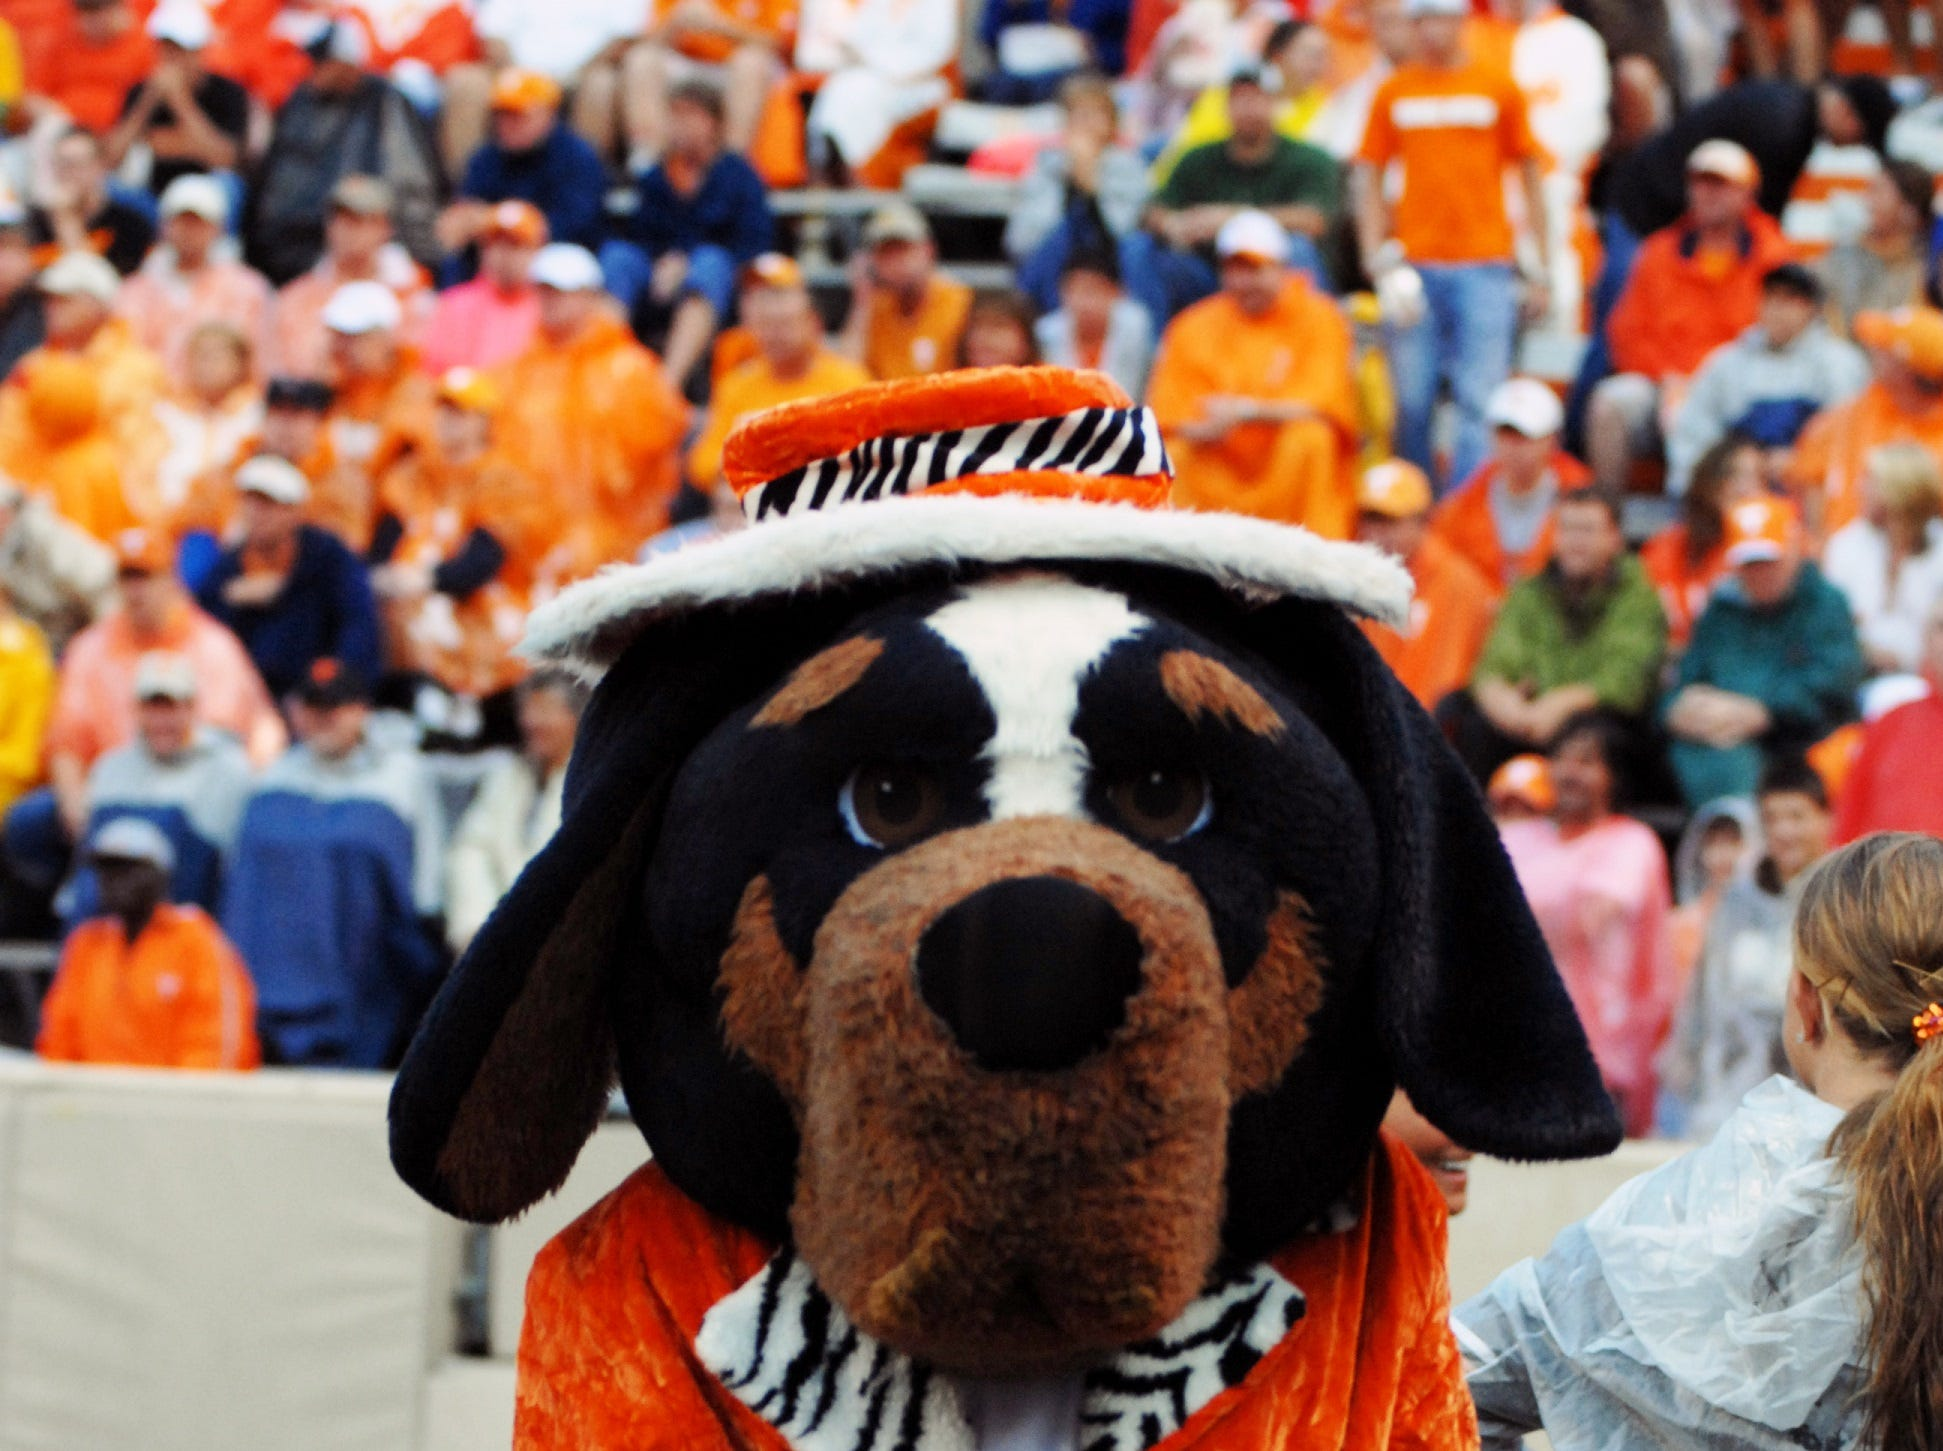 Smokey wears an orange velvet jacket and hat during a UT football game, 2007.